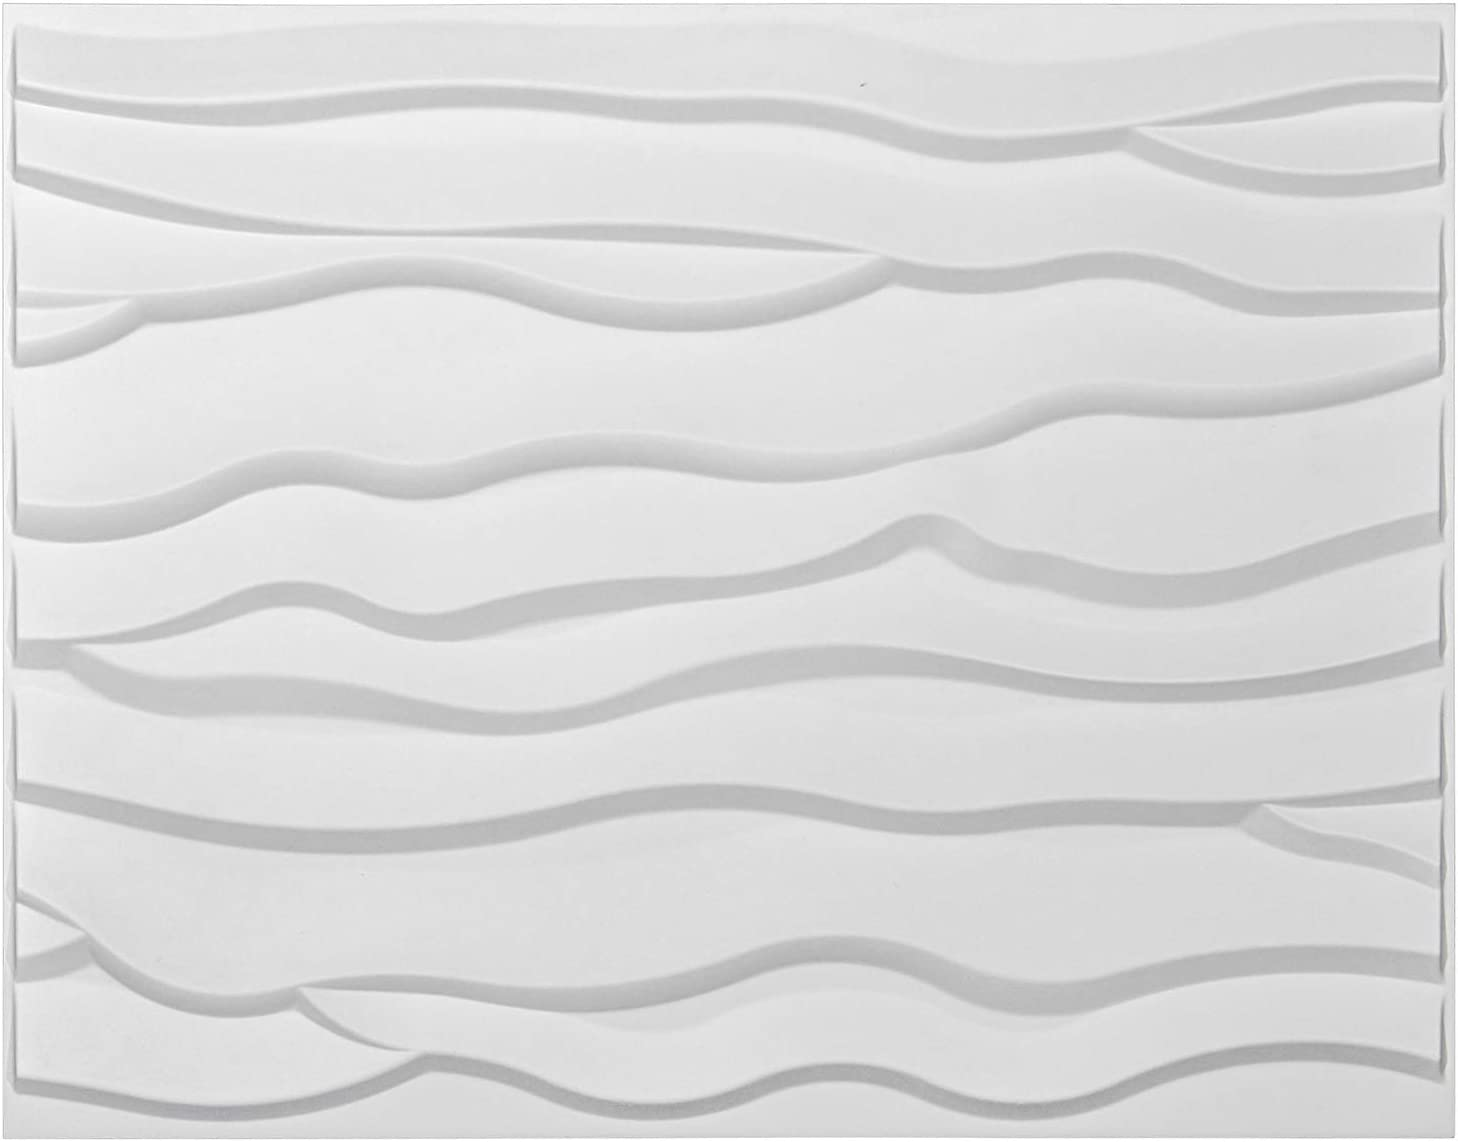 Art3d Wave 3D Wall Panels, Primitive-White Pack of 6 Tiles 32 Sq.Ft(Plant Fiber)